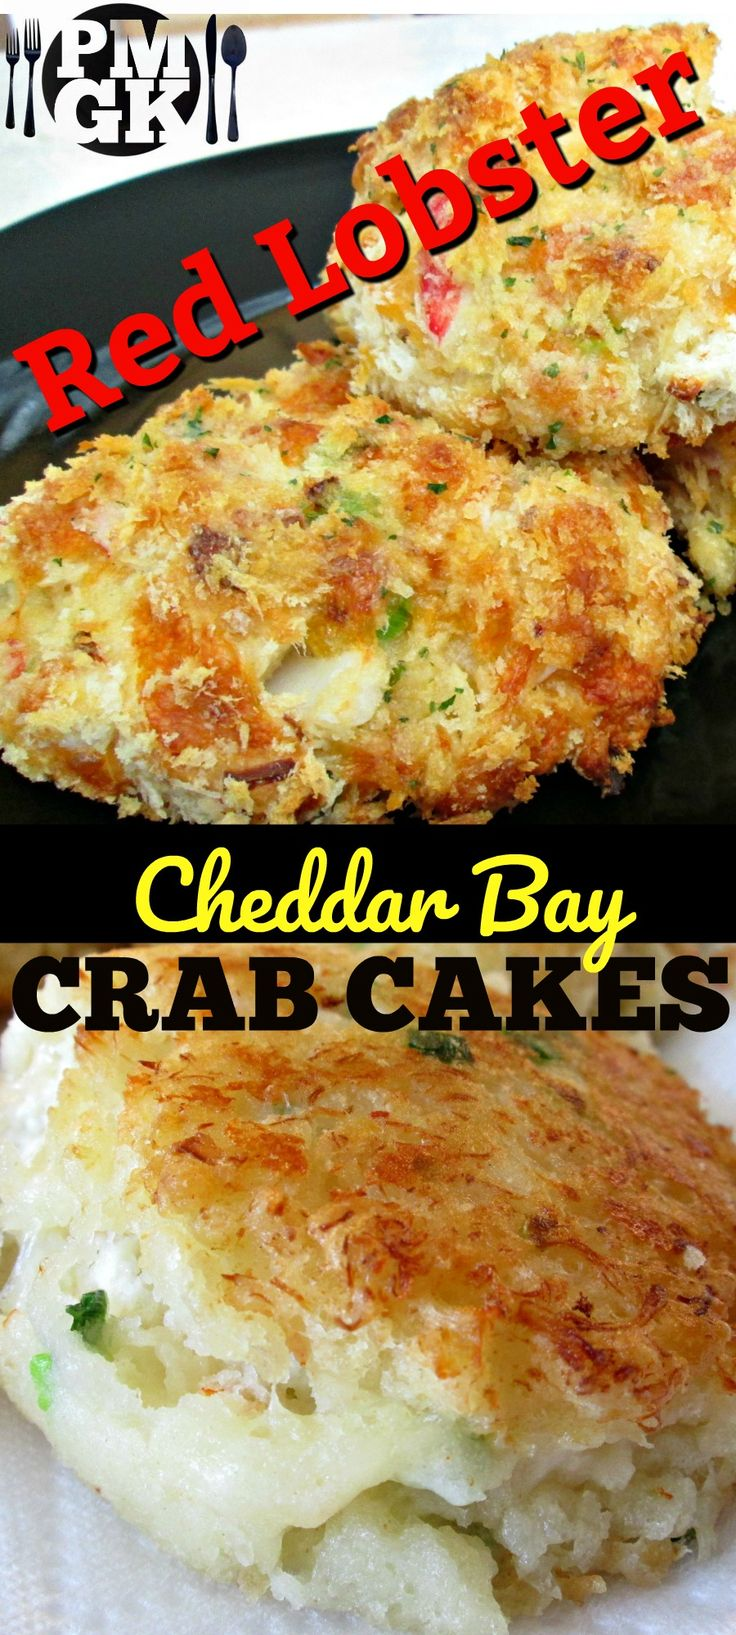 Bot verification crab cakes red lobster crab cakes